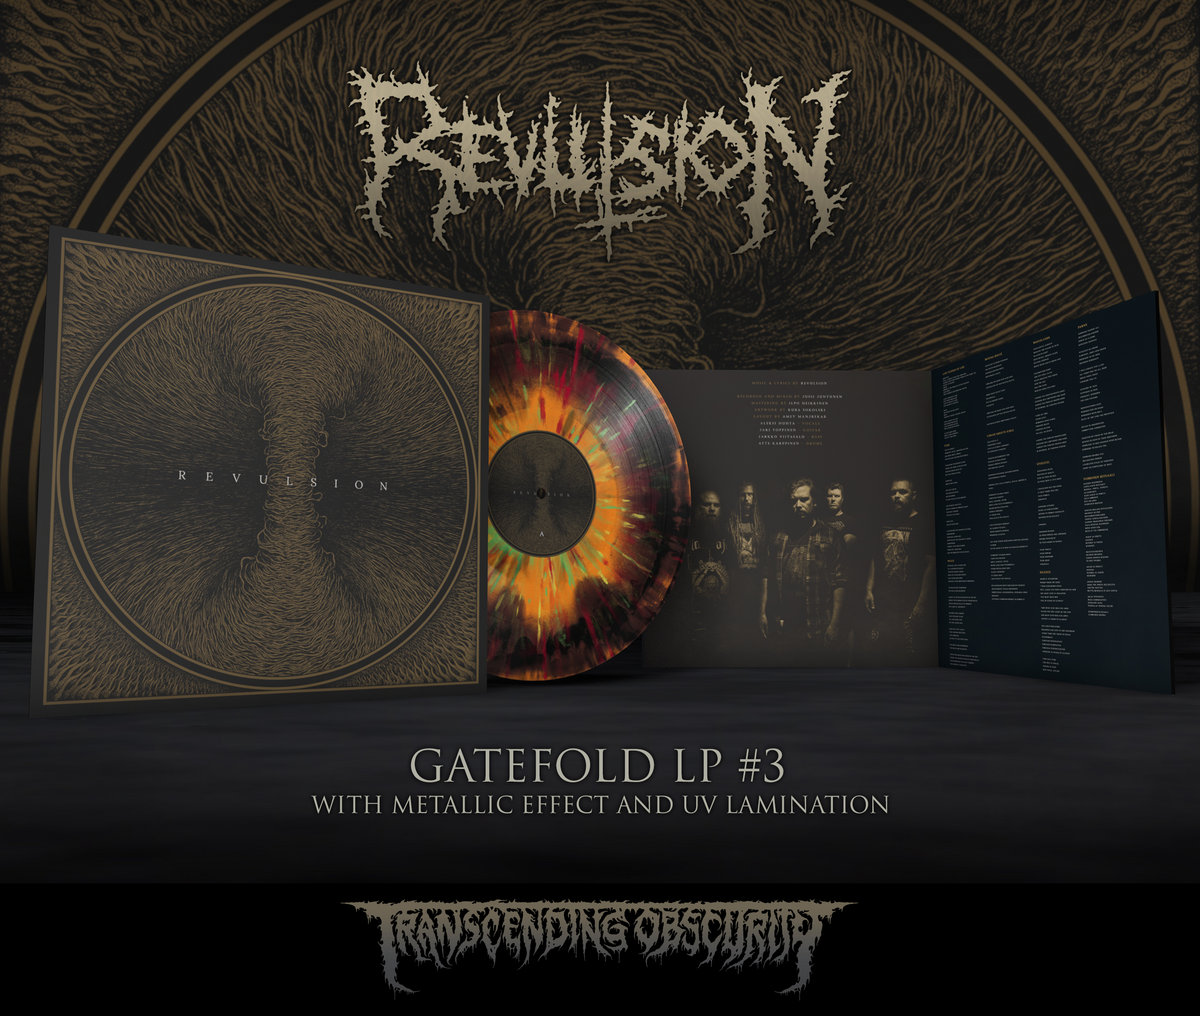 REVULSION - Self-titled Gatefold LP with Metallic Effect Sleeve and UV Lamination (Limited to 100 nos. per variant)